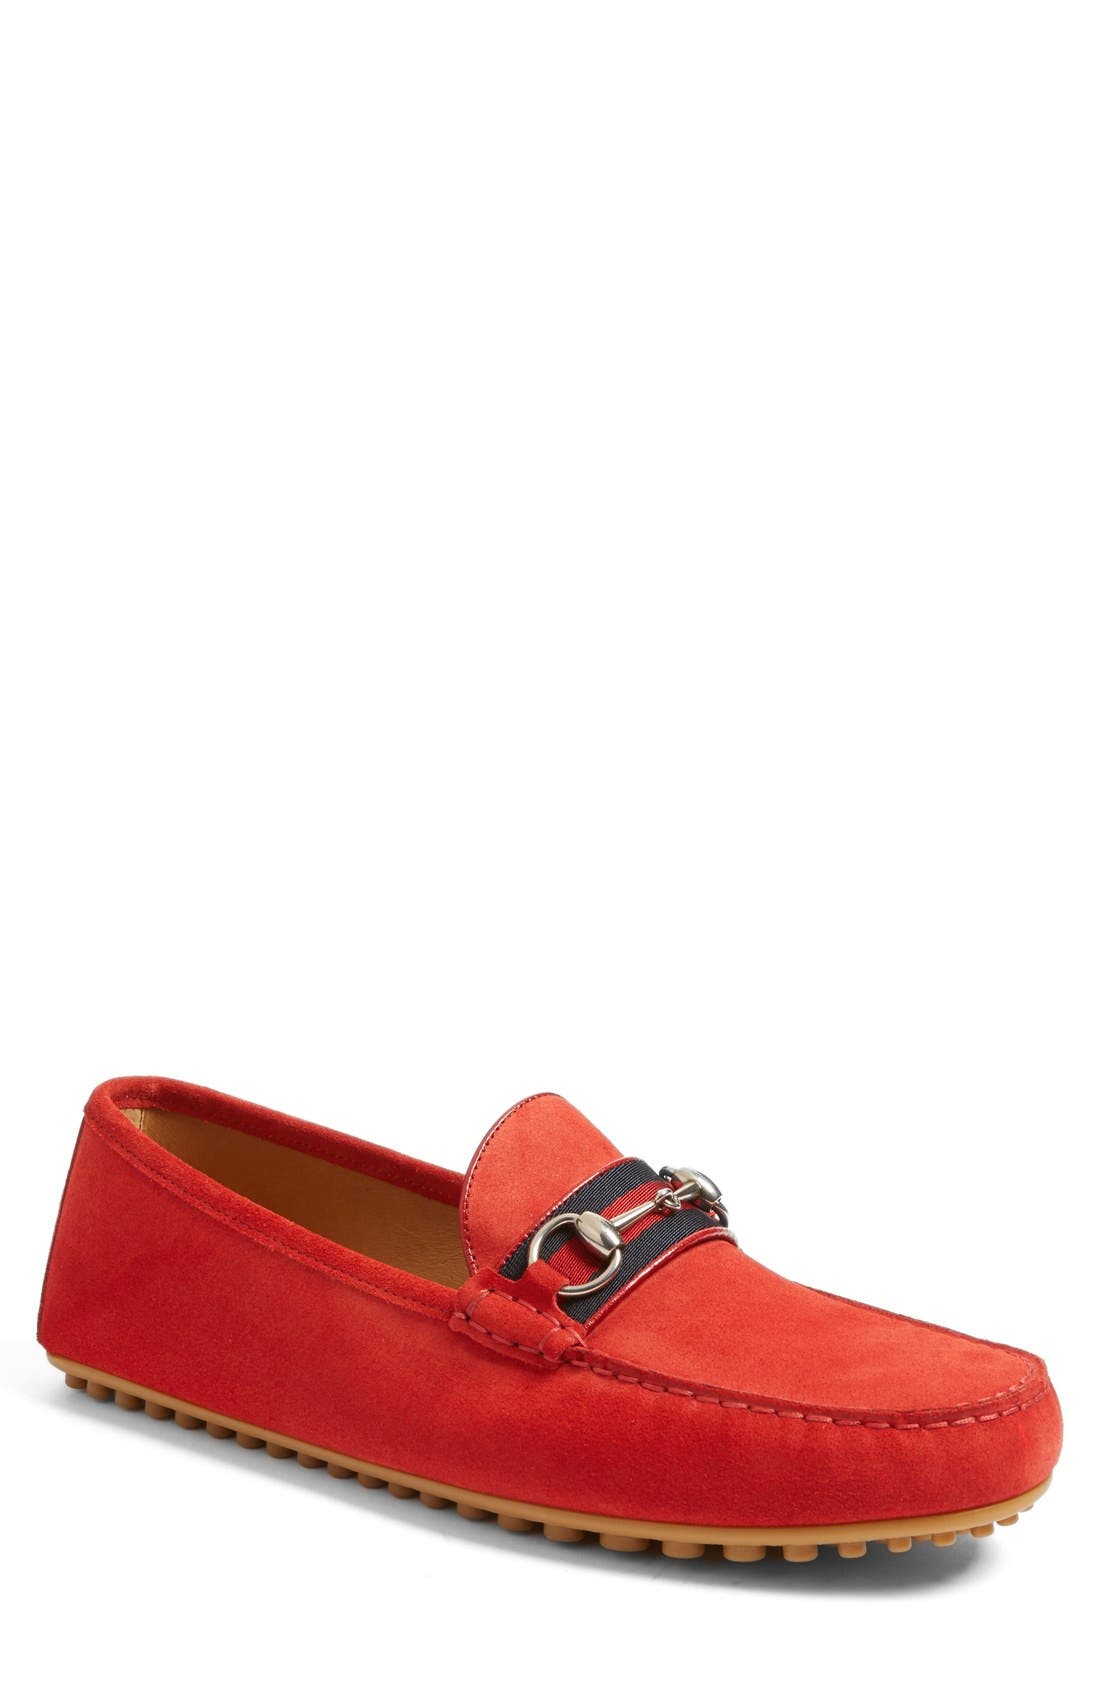 Kanye Bit Loafer,                             Main thumbnail 1, color,                             Ruby Suede